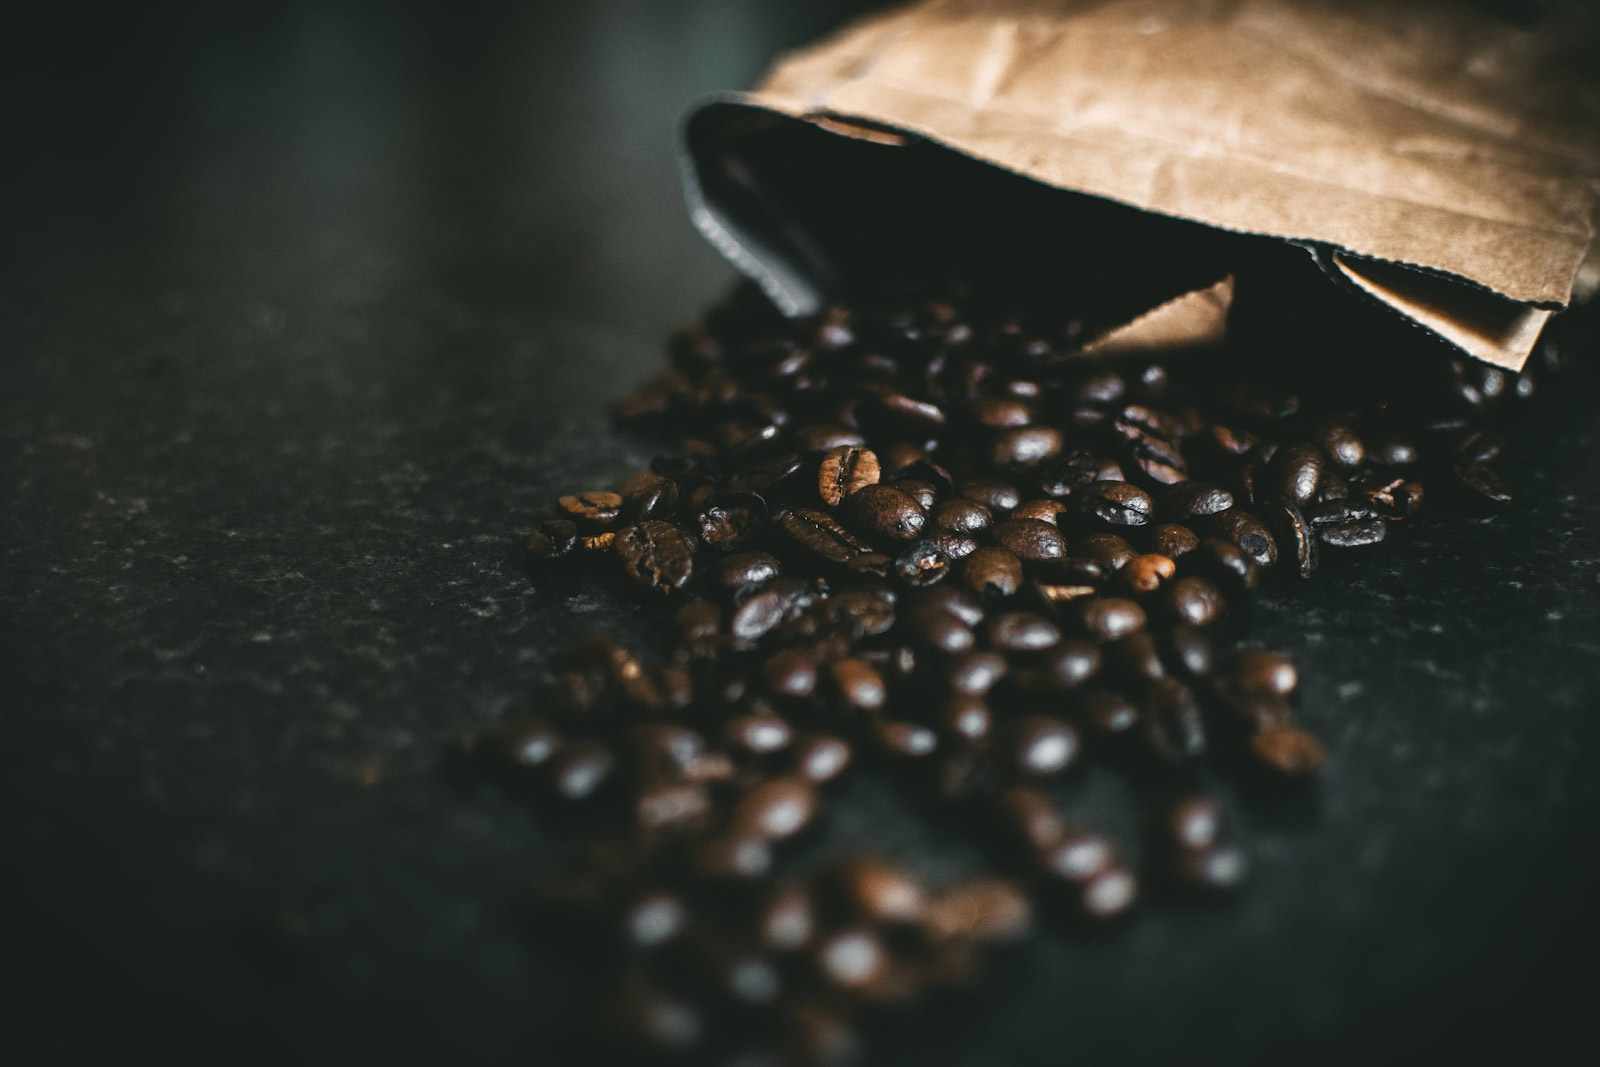 coffee beans spilling out of a paper bag